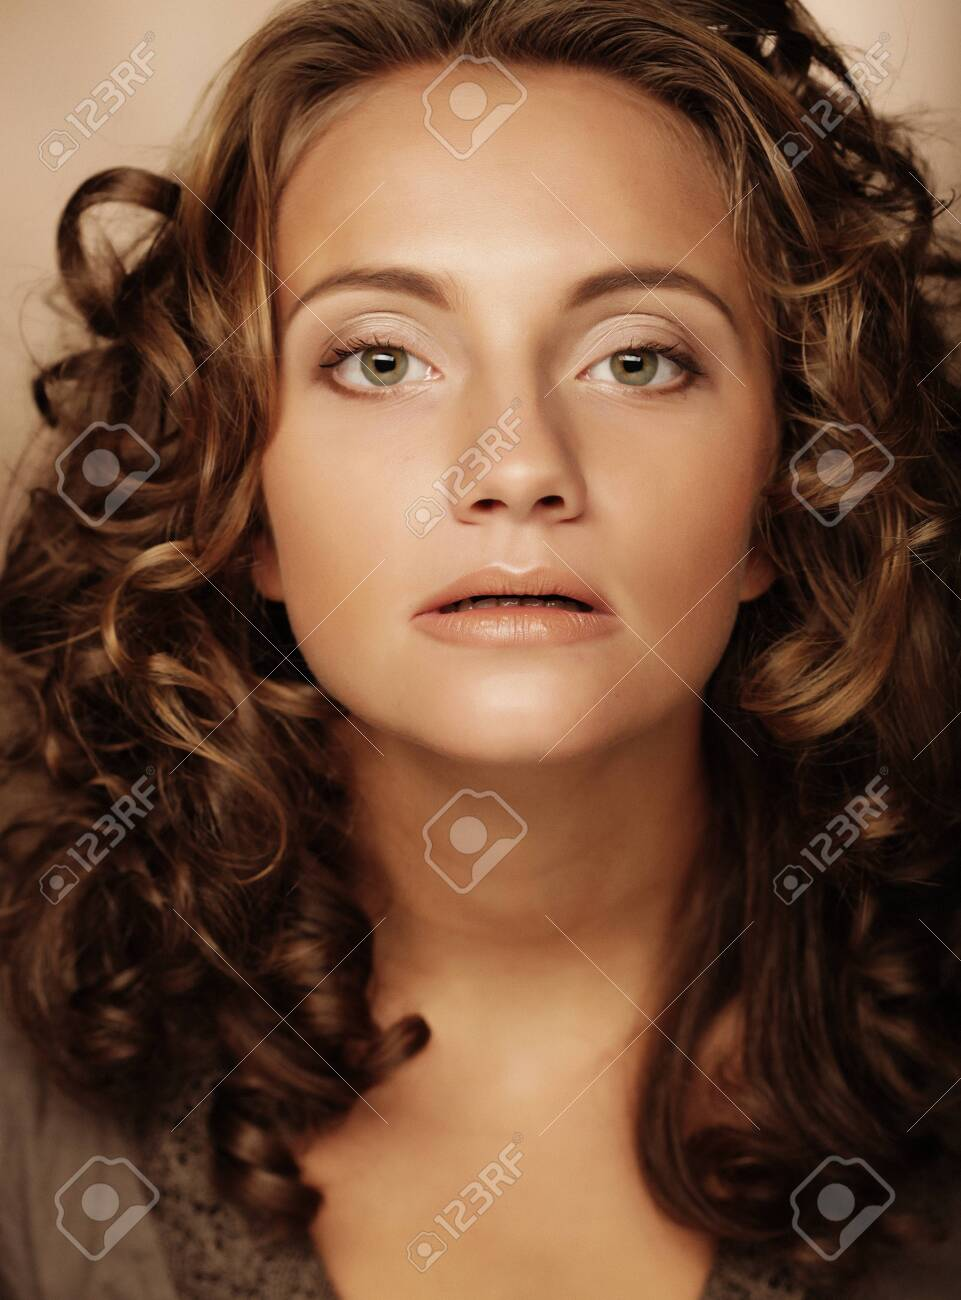 young woman with cury hair - 120868346